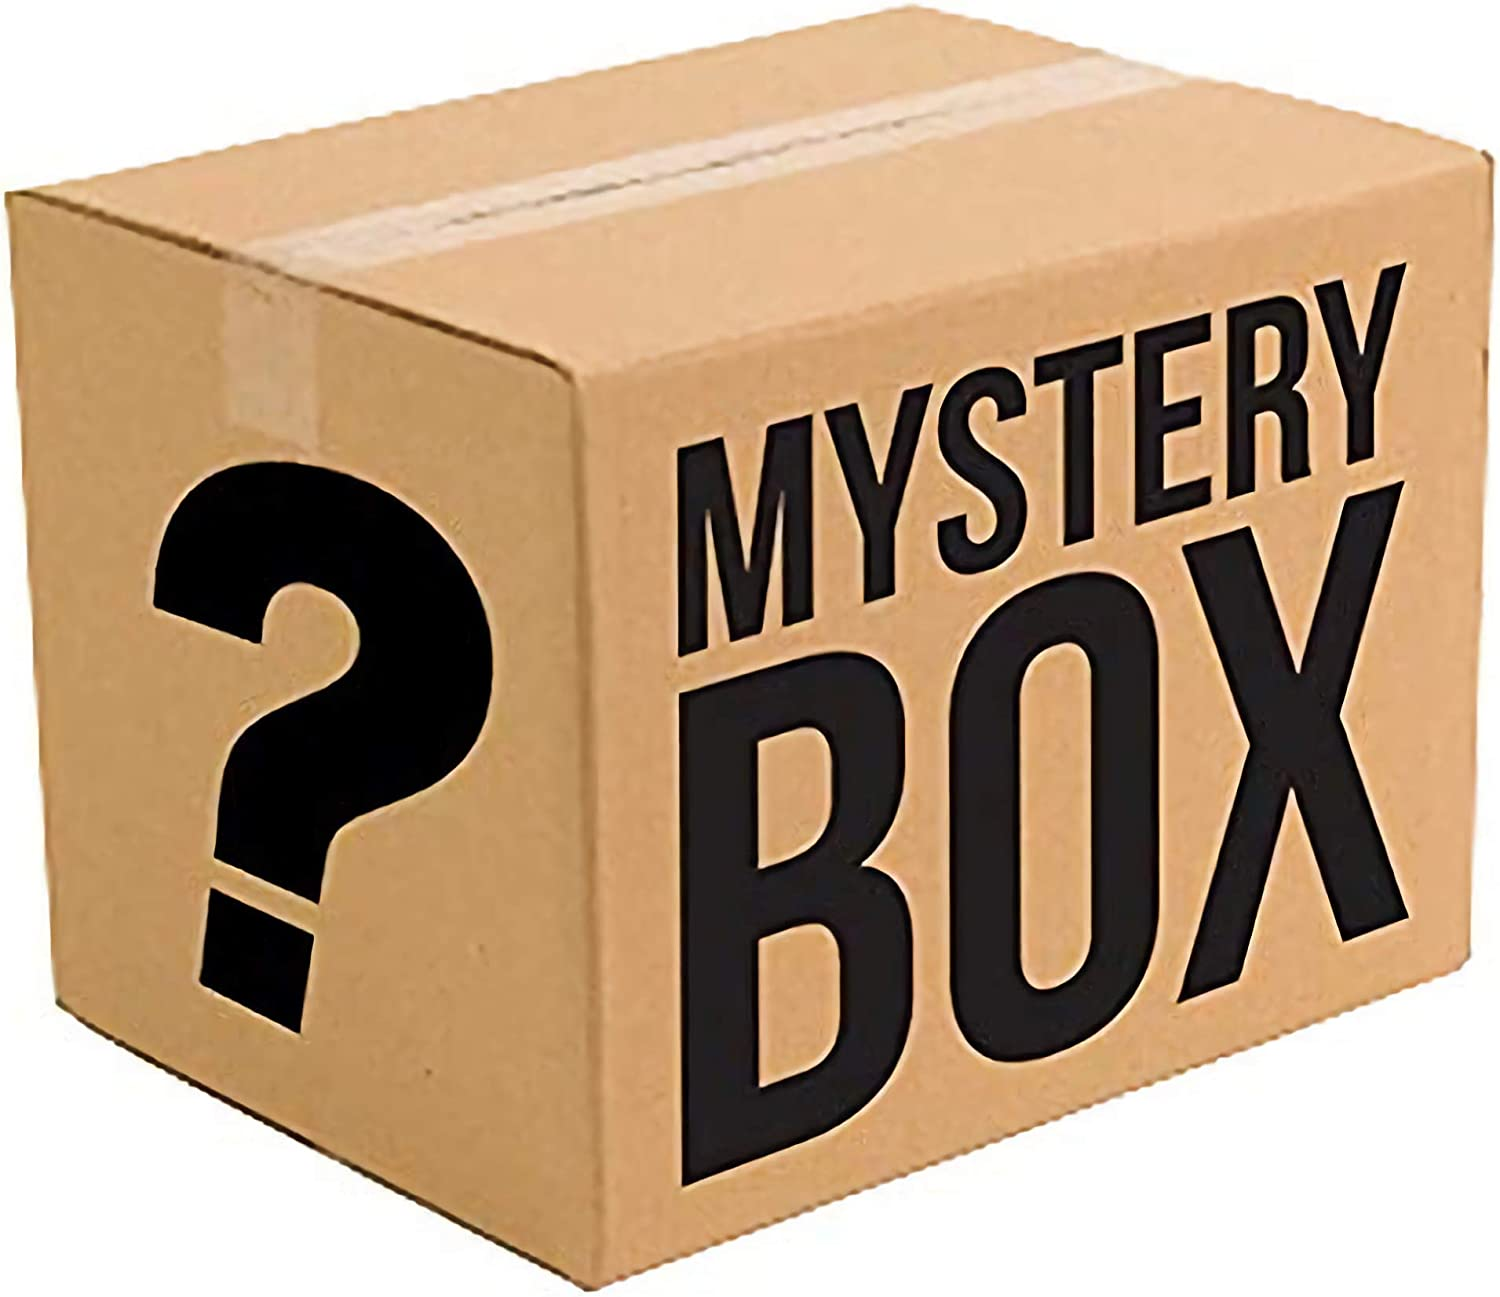 Makes a Nice Gifts for Holiday,Birthday and Party PJJ Mysteries Box Anything Possible All Items are New/…